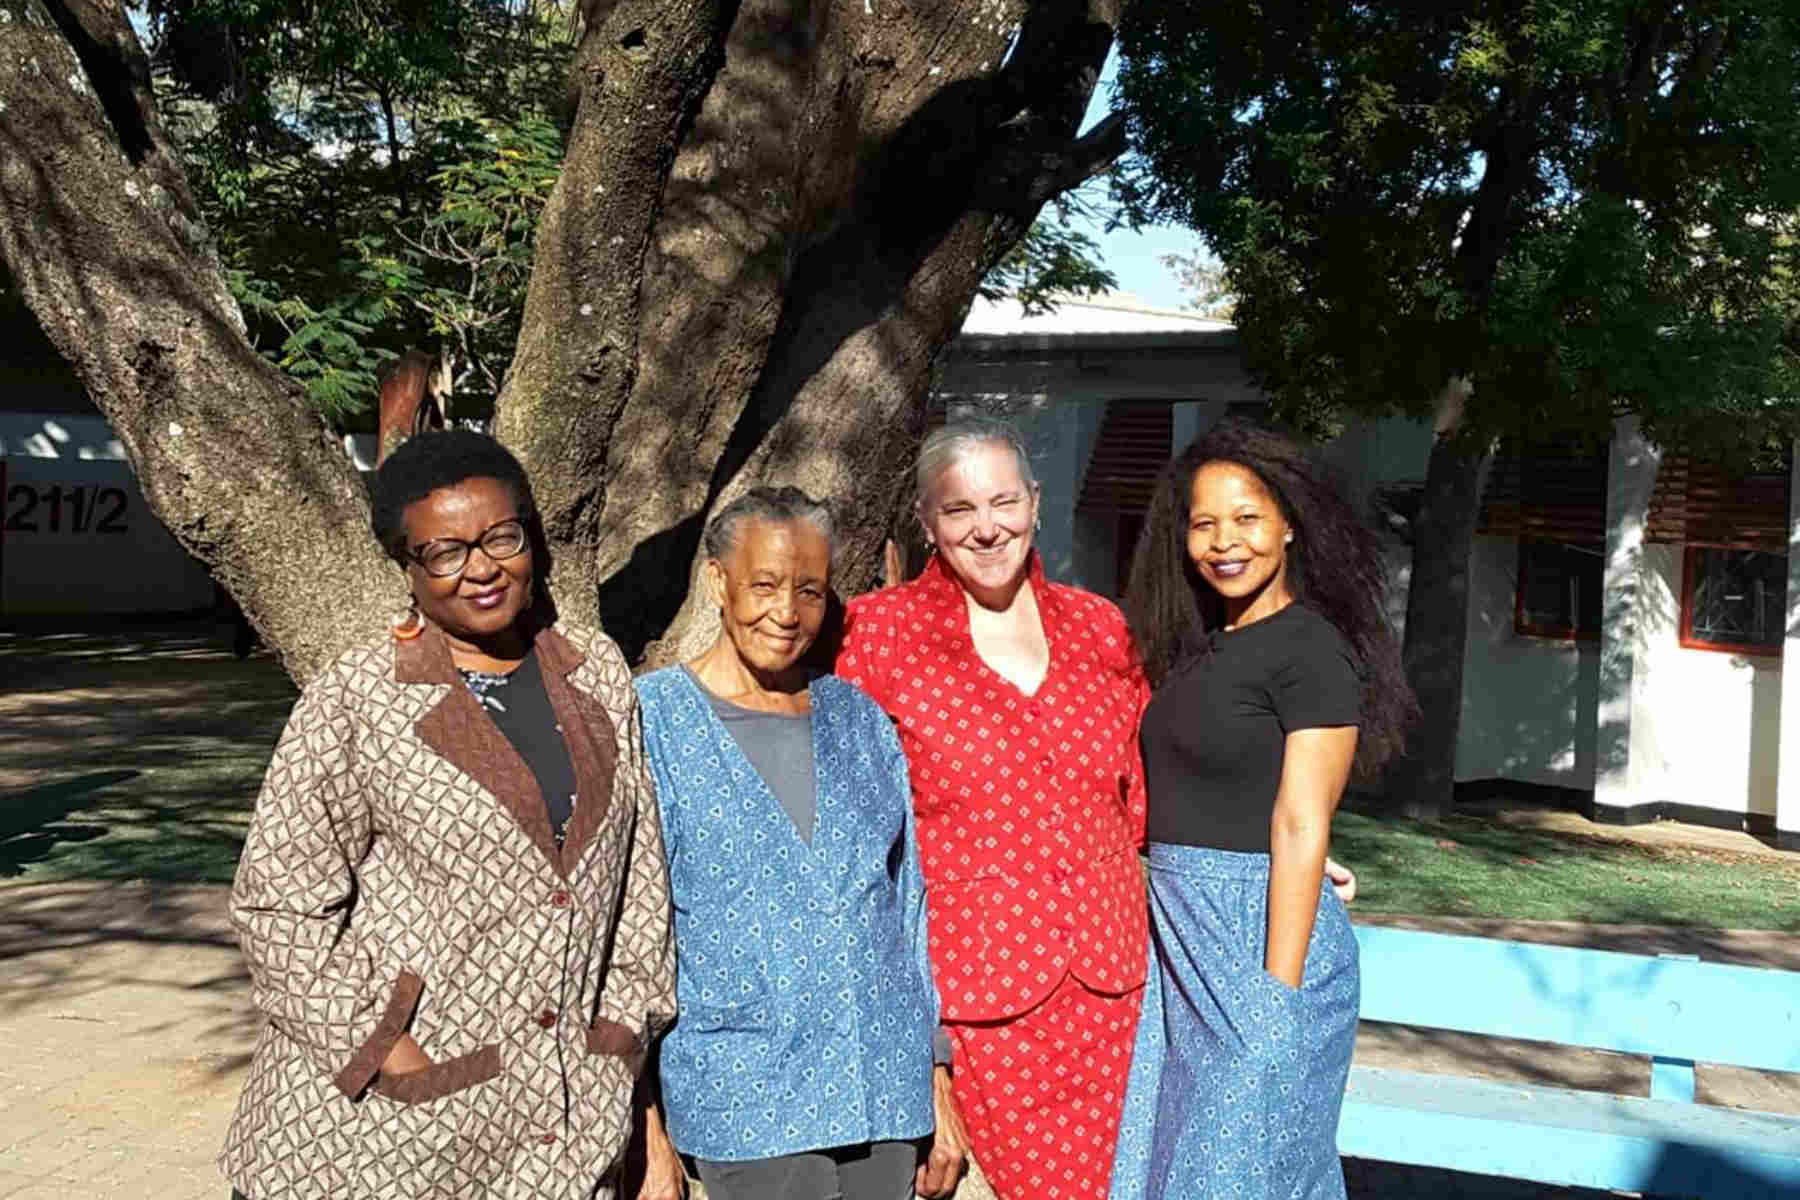 The women behind Botswana Women Write